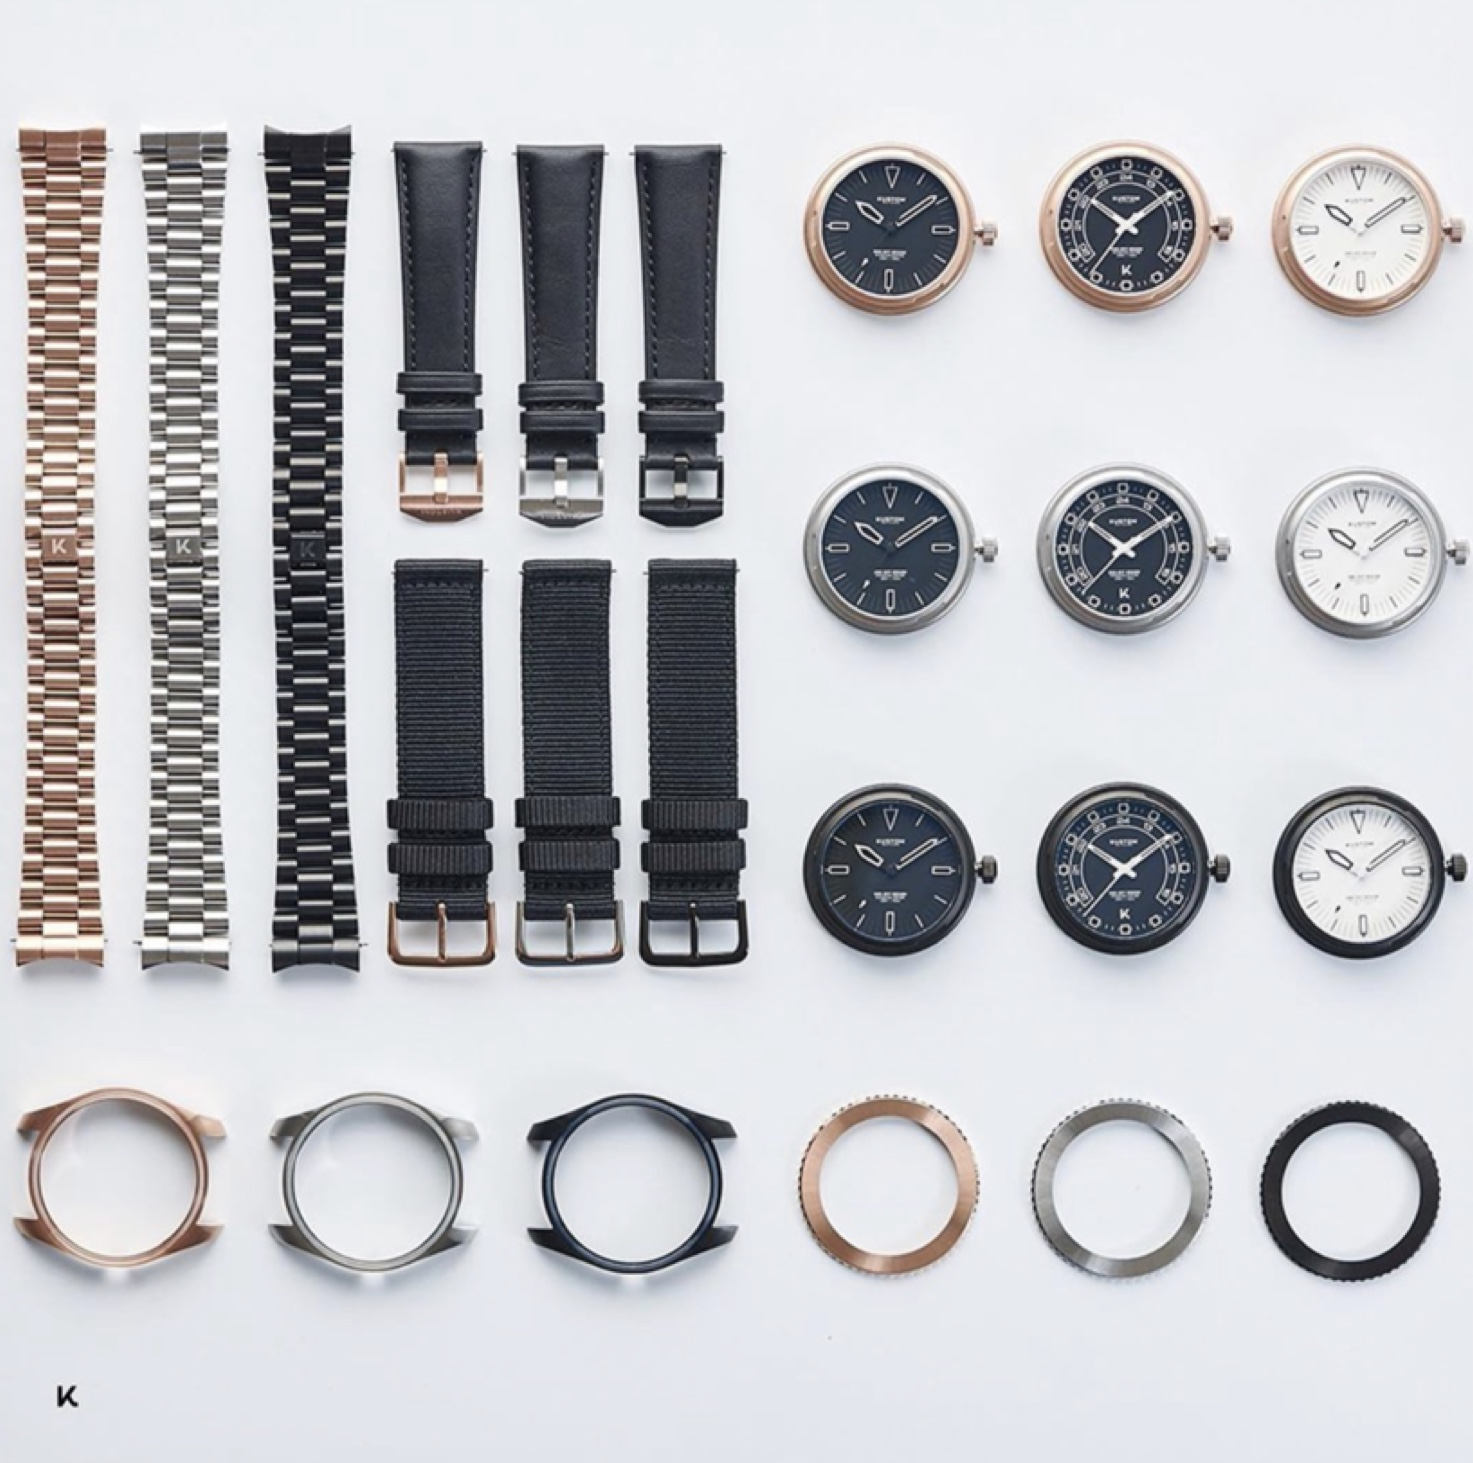 Kustom watches components